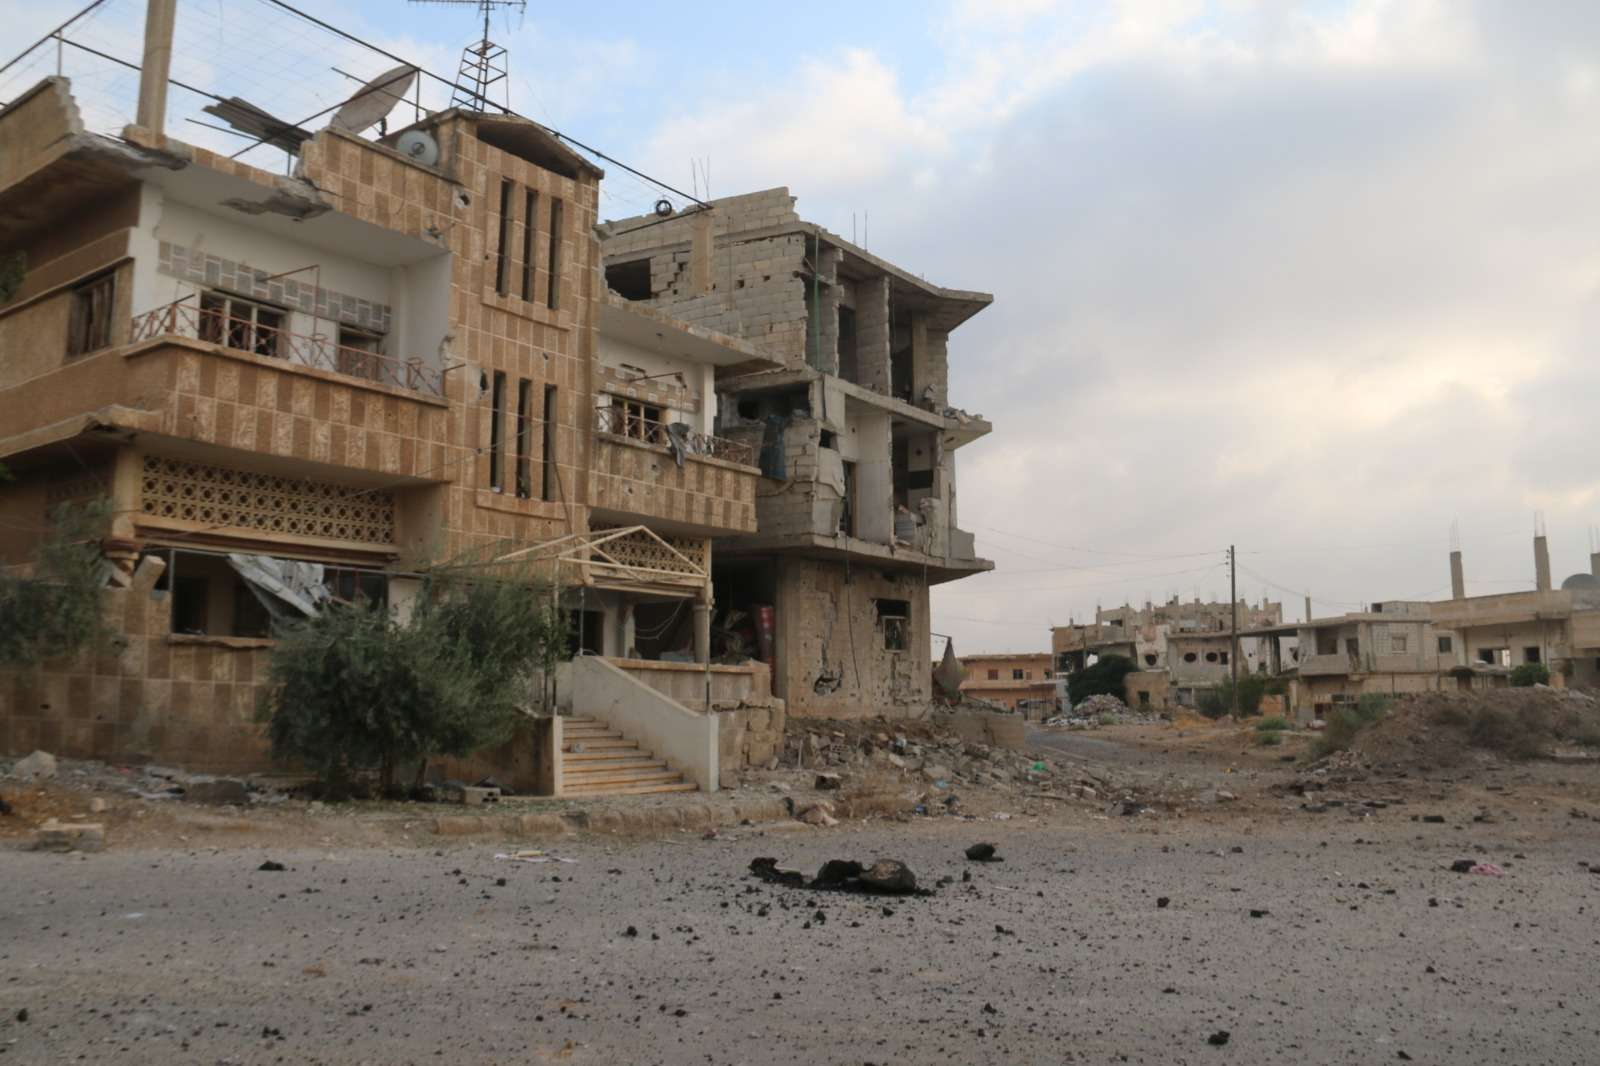 Syria: Humanitarian crisis deepens as government forces escalate attacks on Daraa